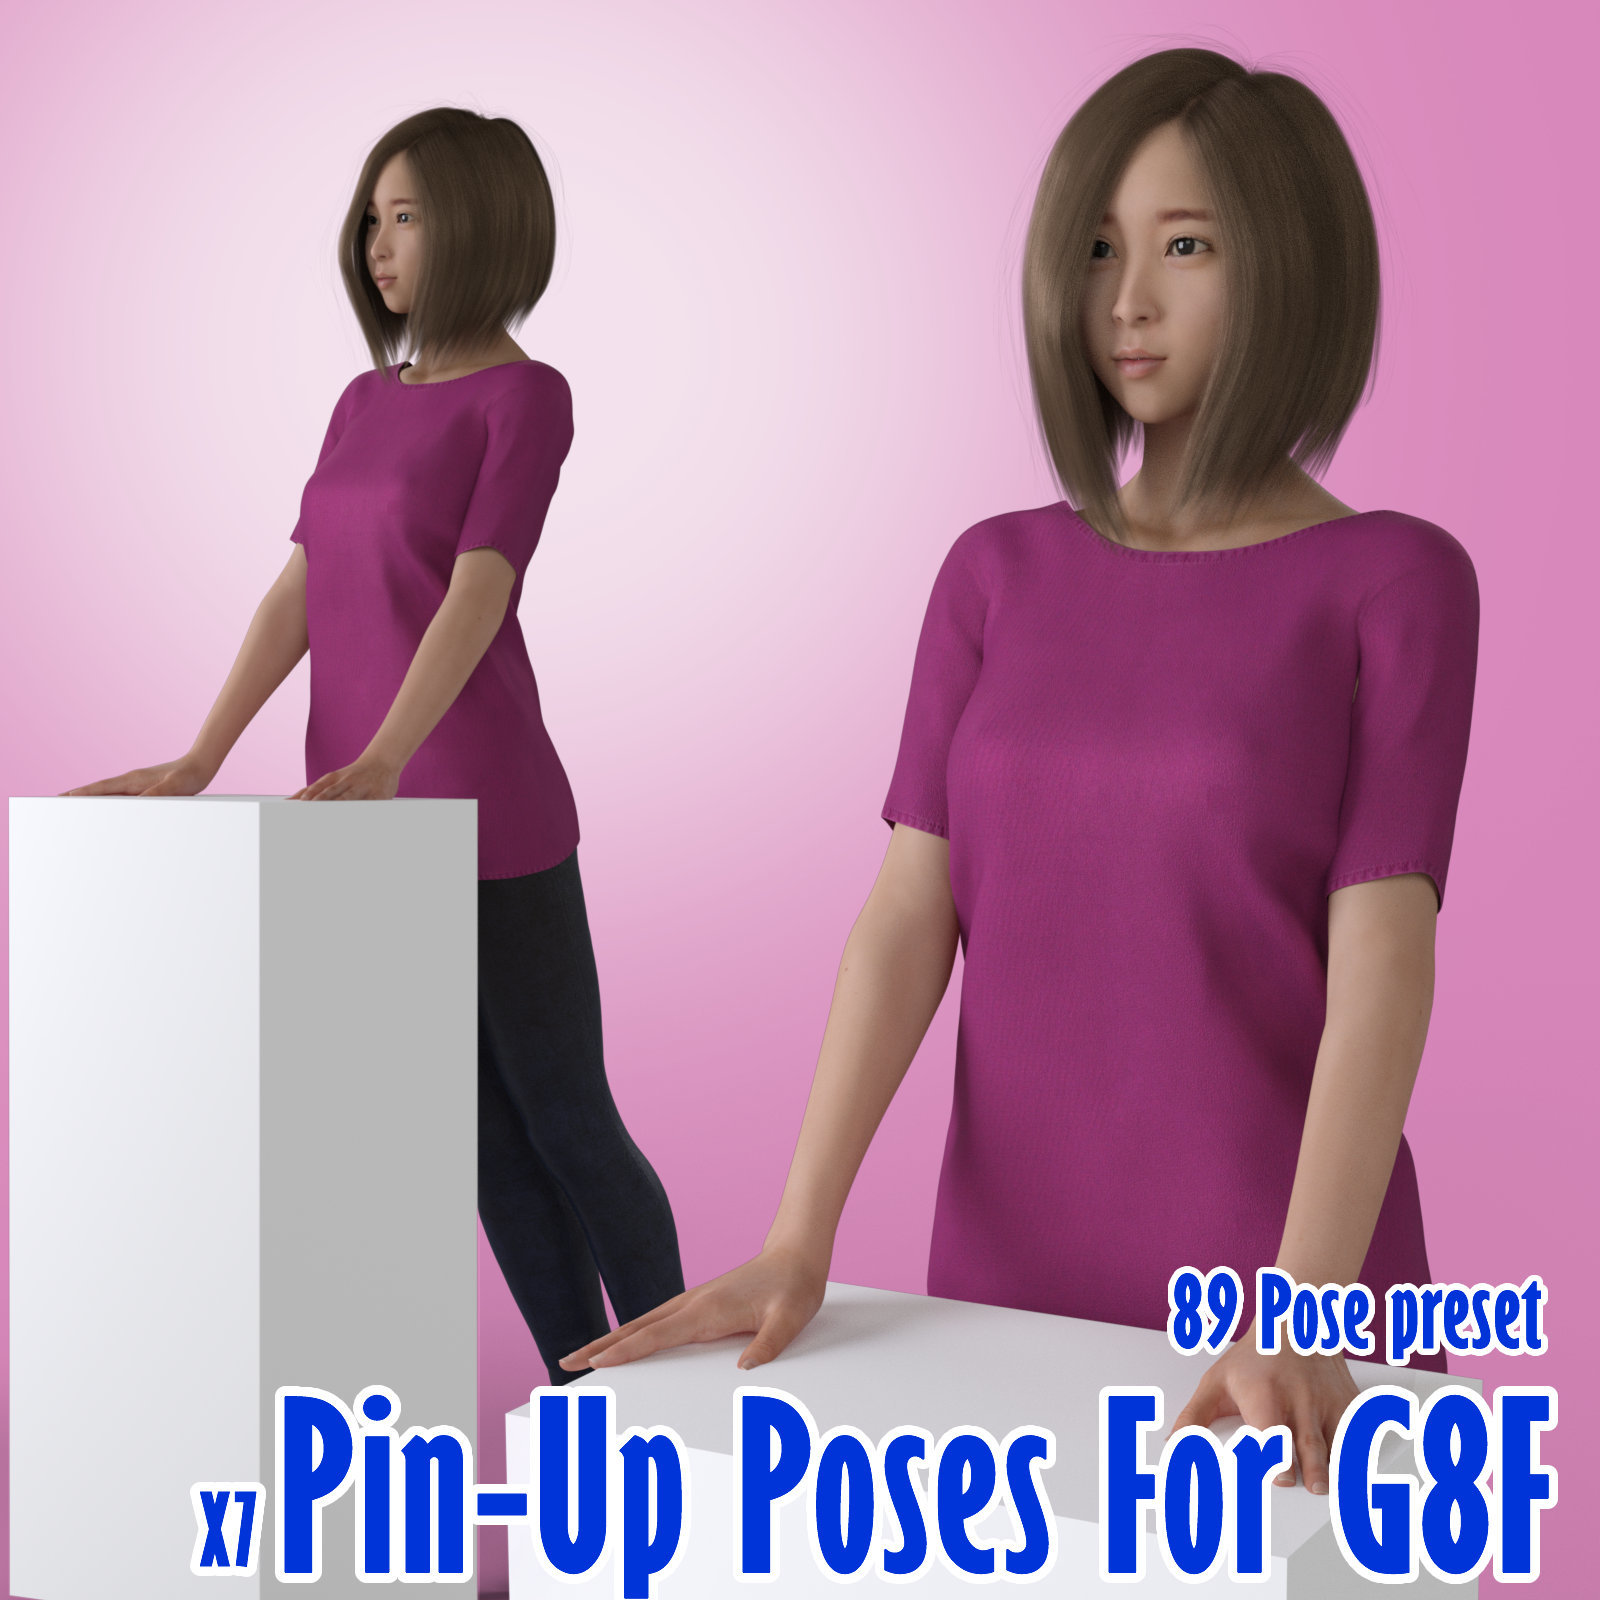 X7 Pin-Up Poses For G8F 2019